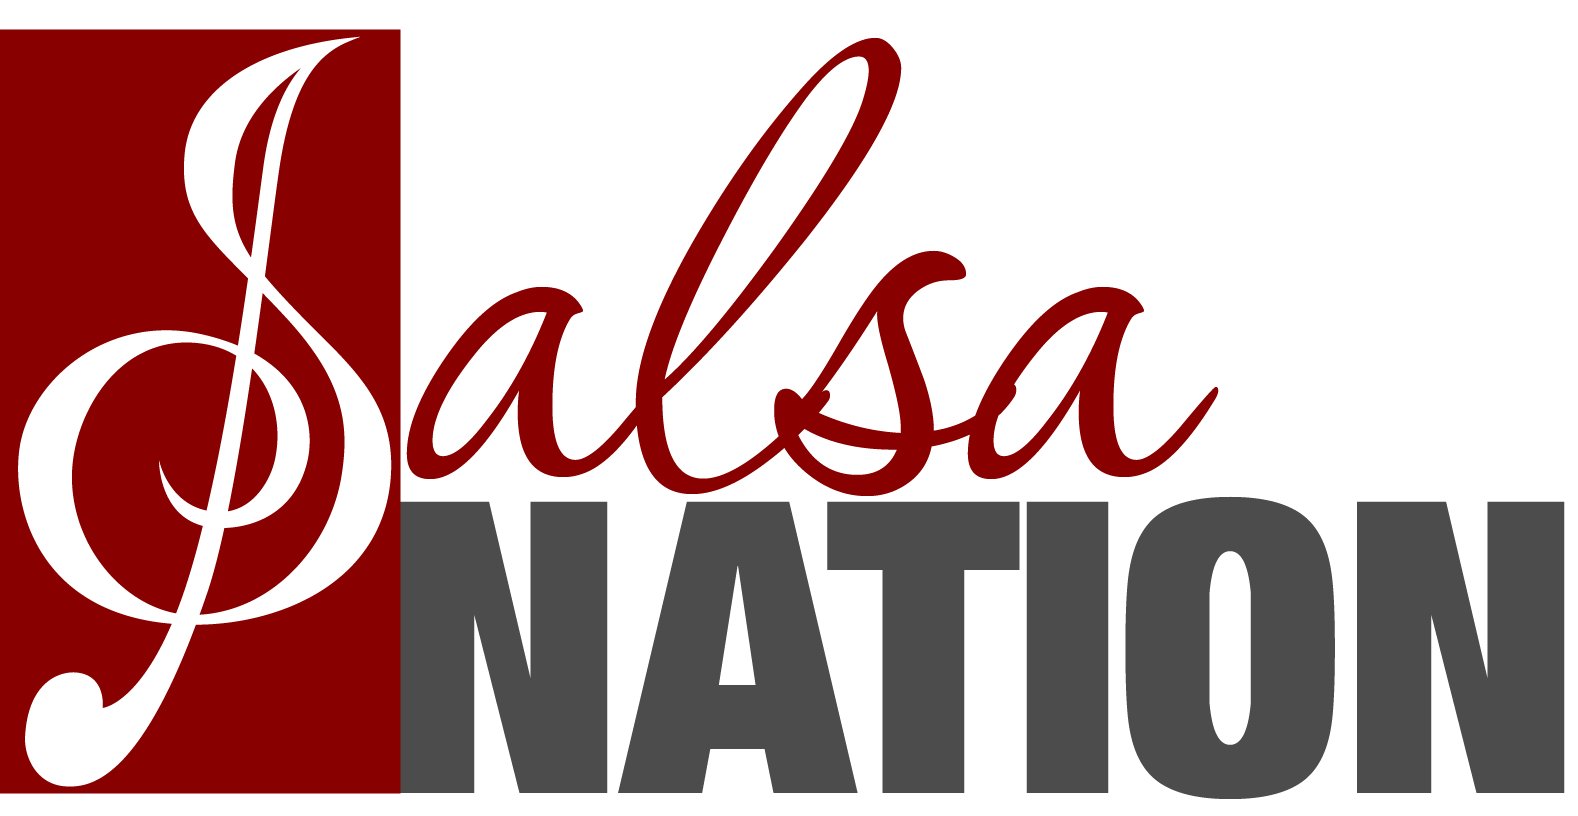 Salsa Nation - LionsRoad Studios